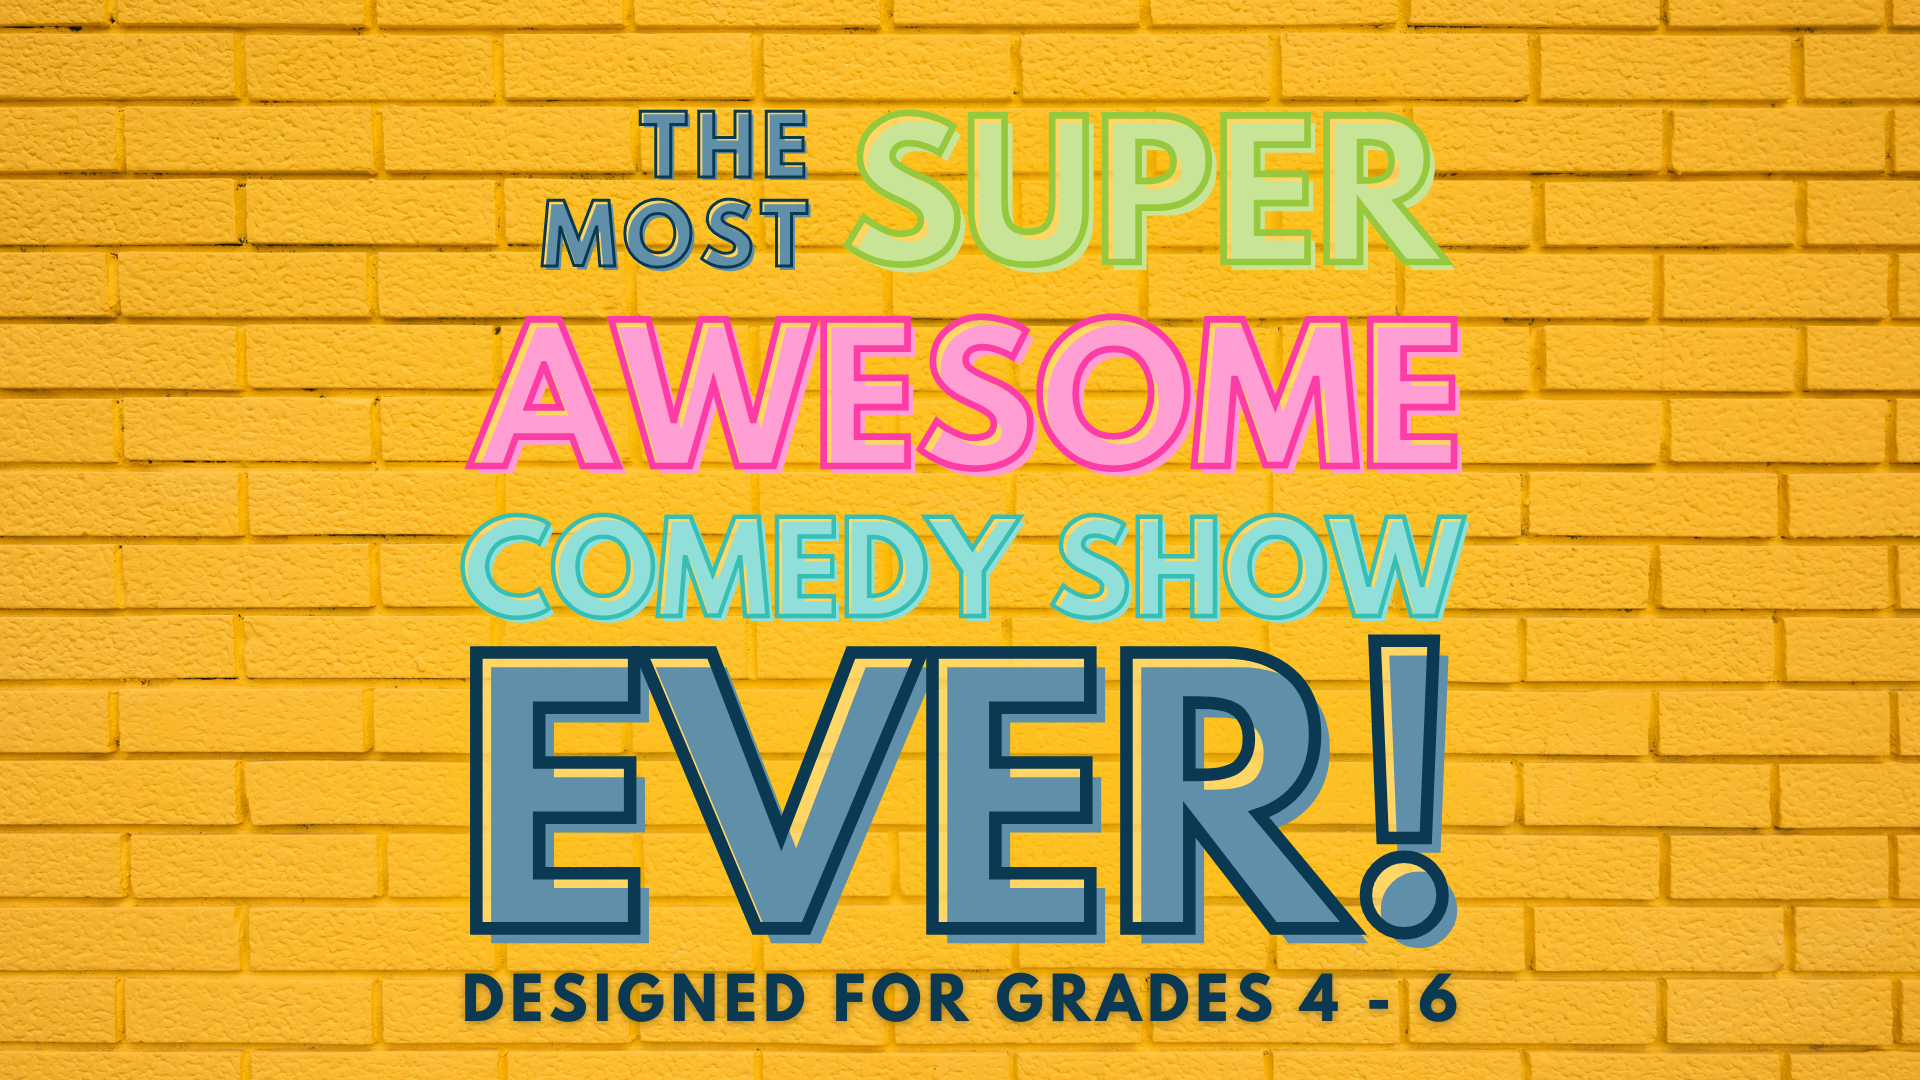 The Most Super-Awesome Comedy Show Ever! Designed for Grades 4 - 6